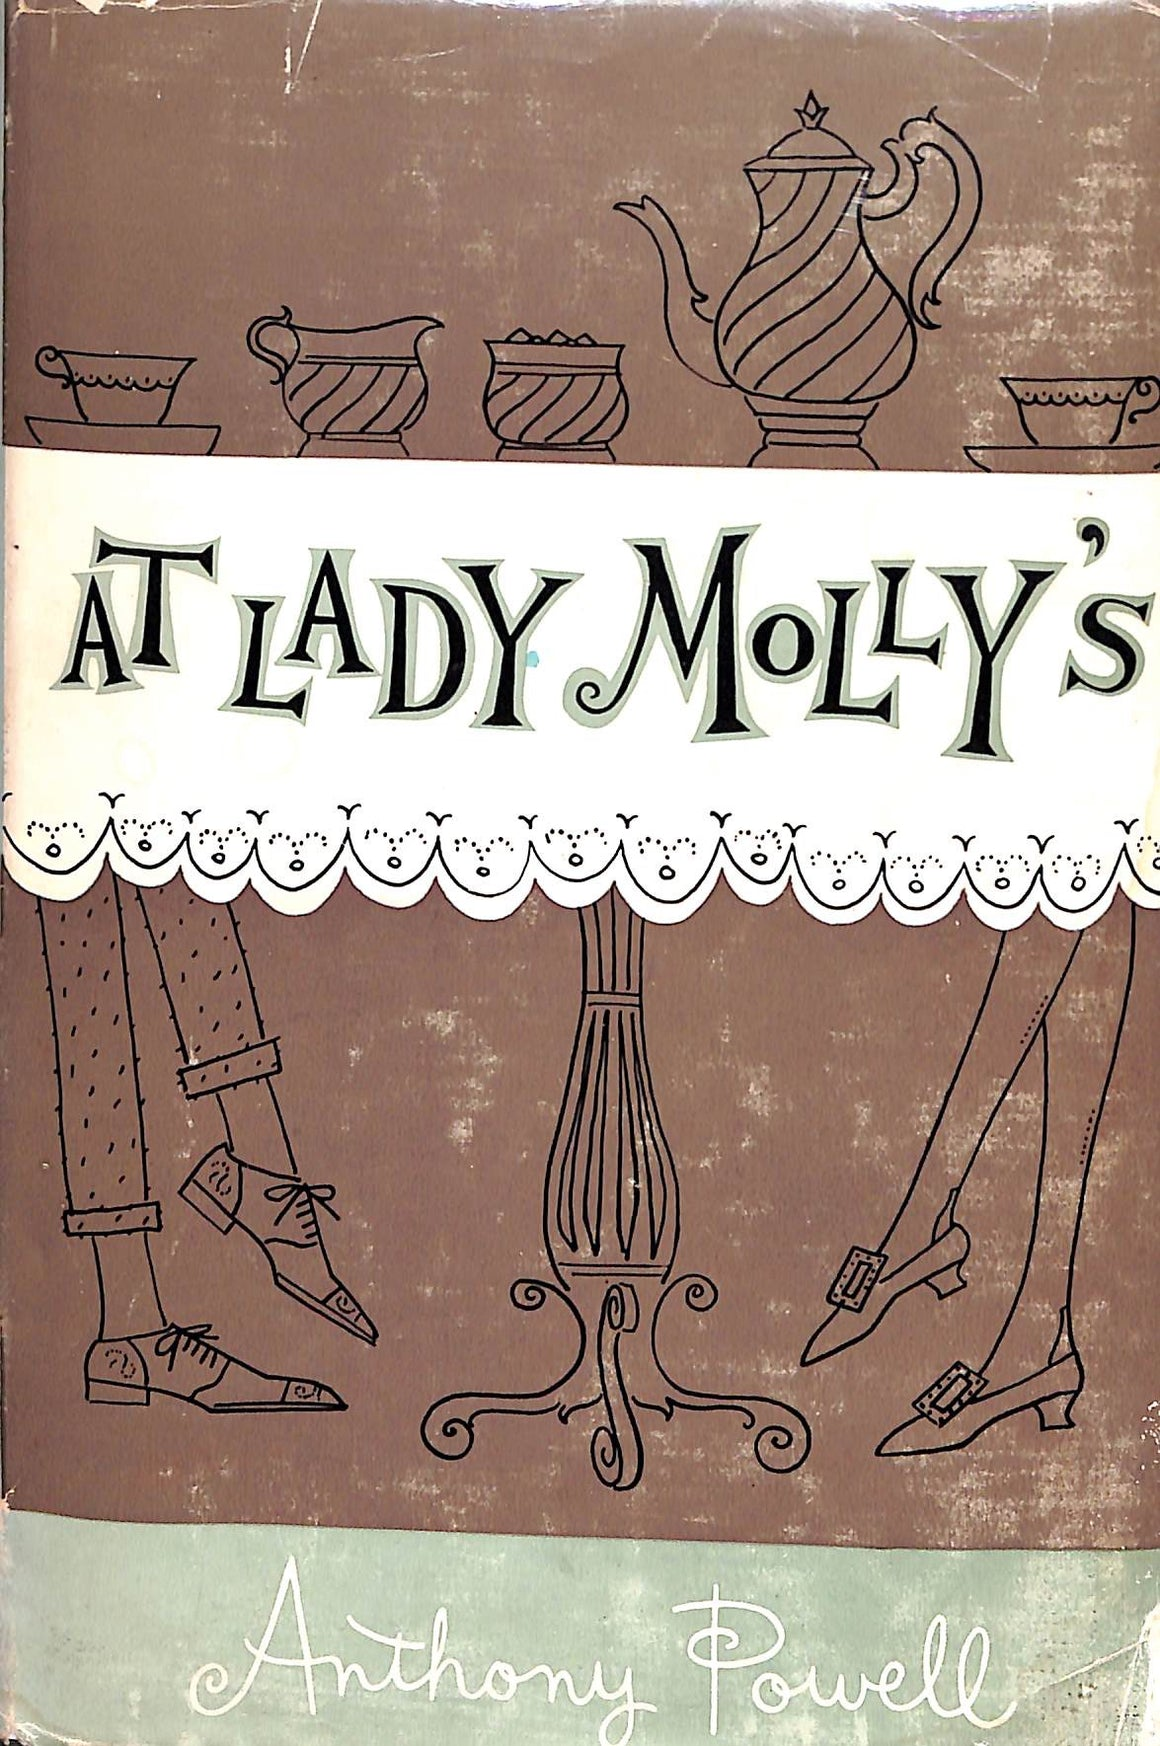 At Lady Molly's by Anthony Powell